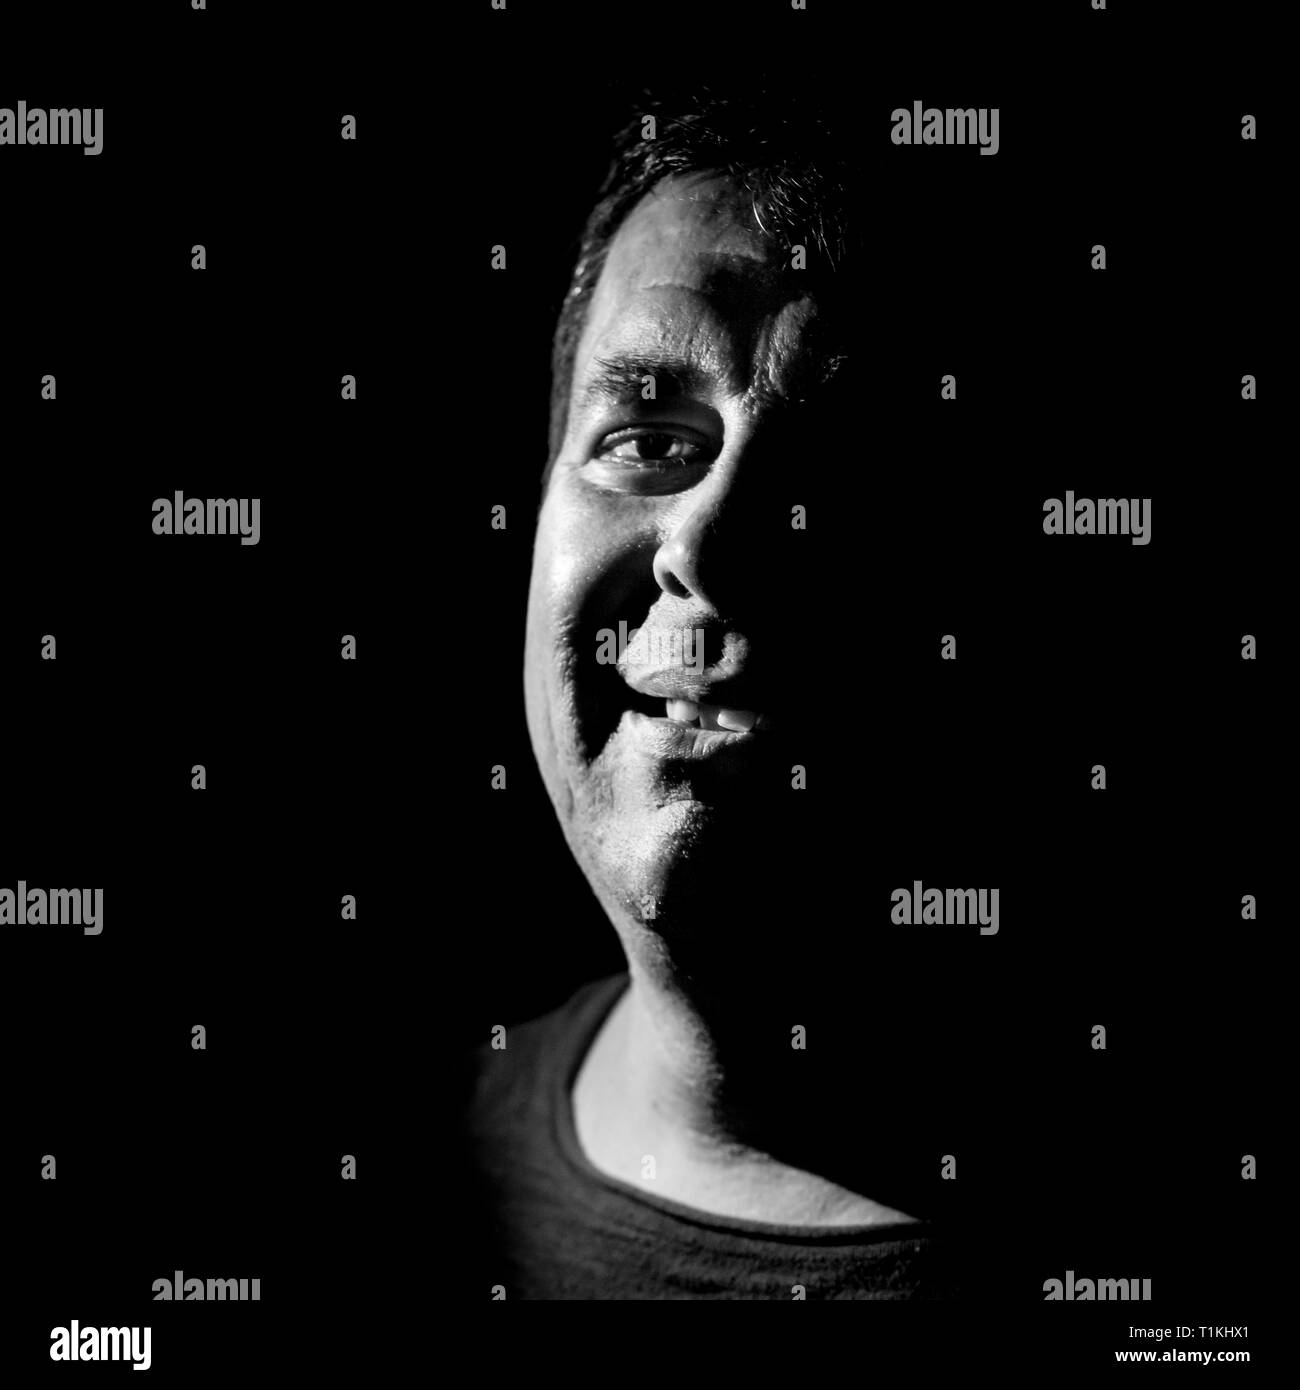 Stylish portrait of adult caucasian man. He smiles like maniac and seems like maniac or crazy. Black and white shot, low-key lighting. Angry man, fear - Stock Image